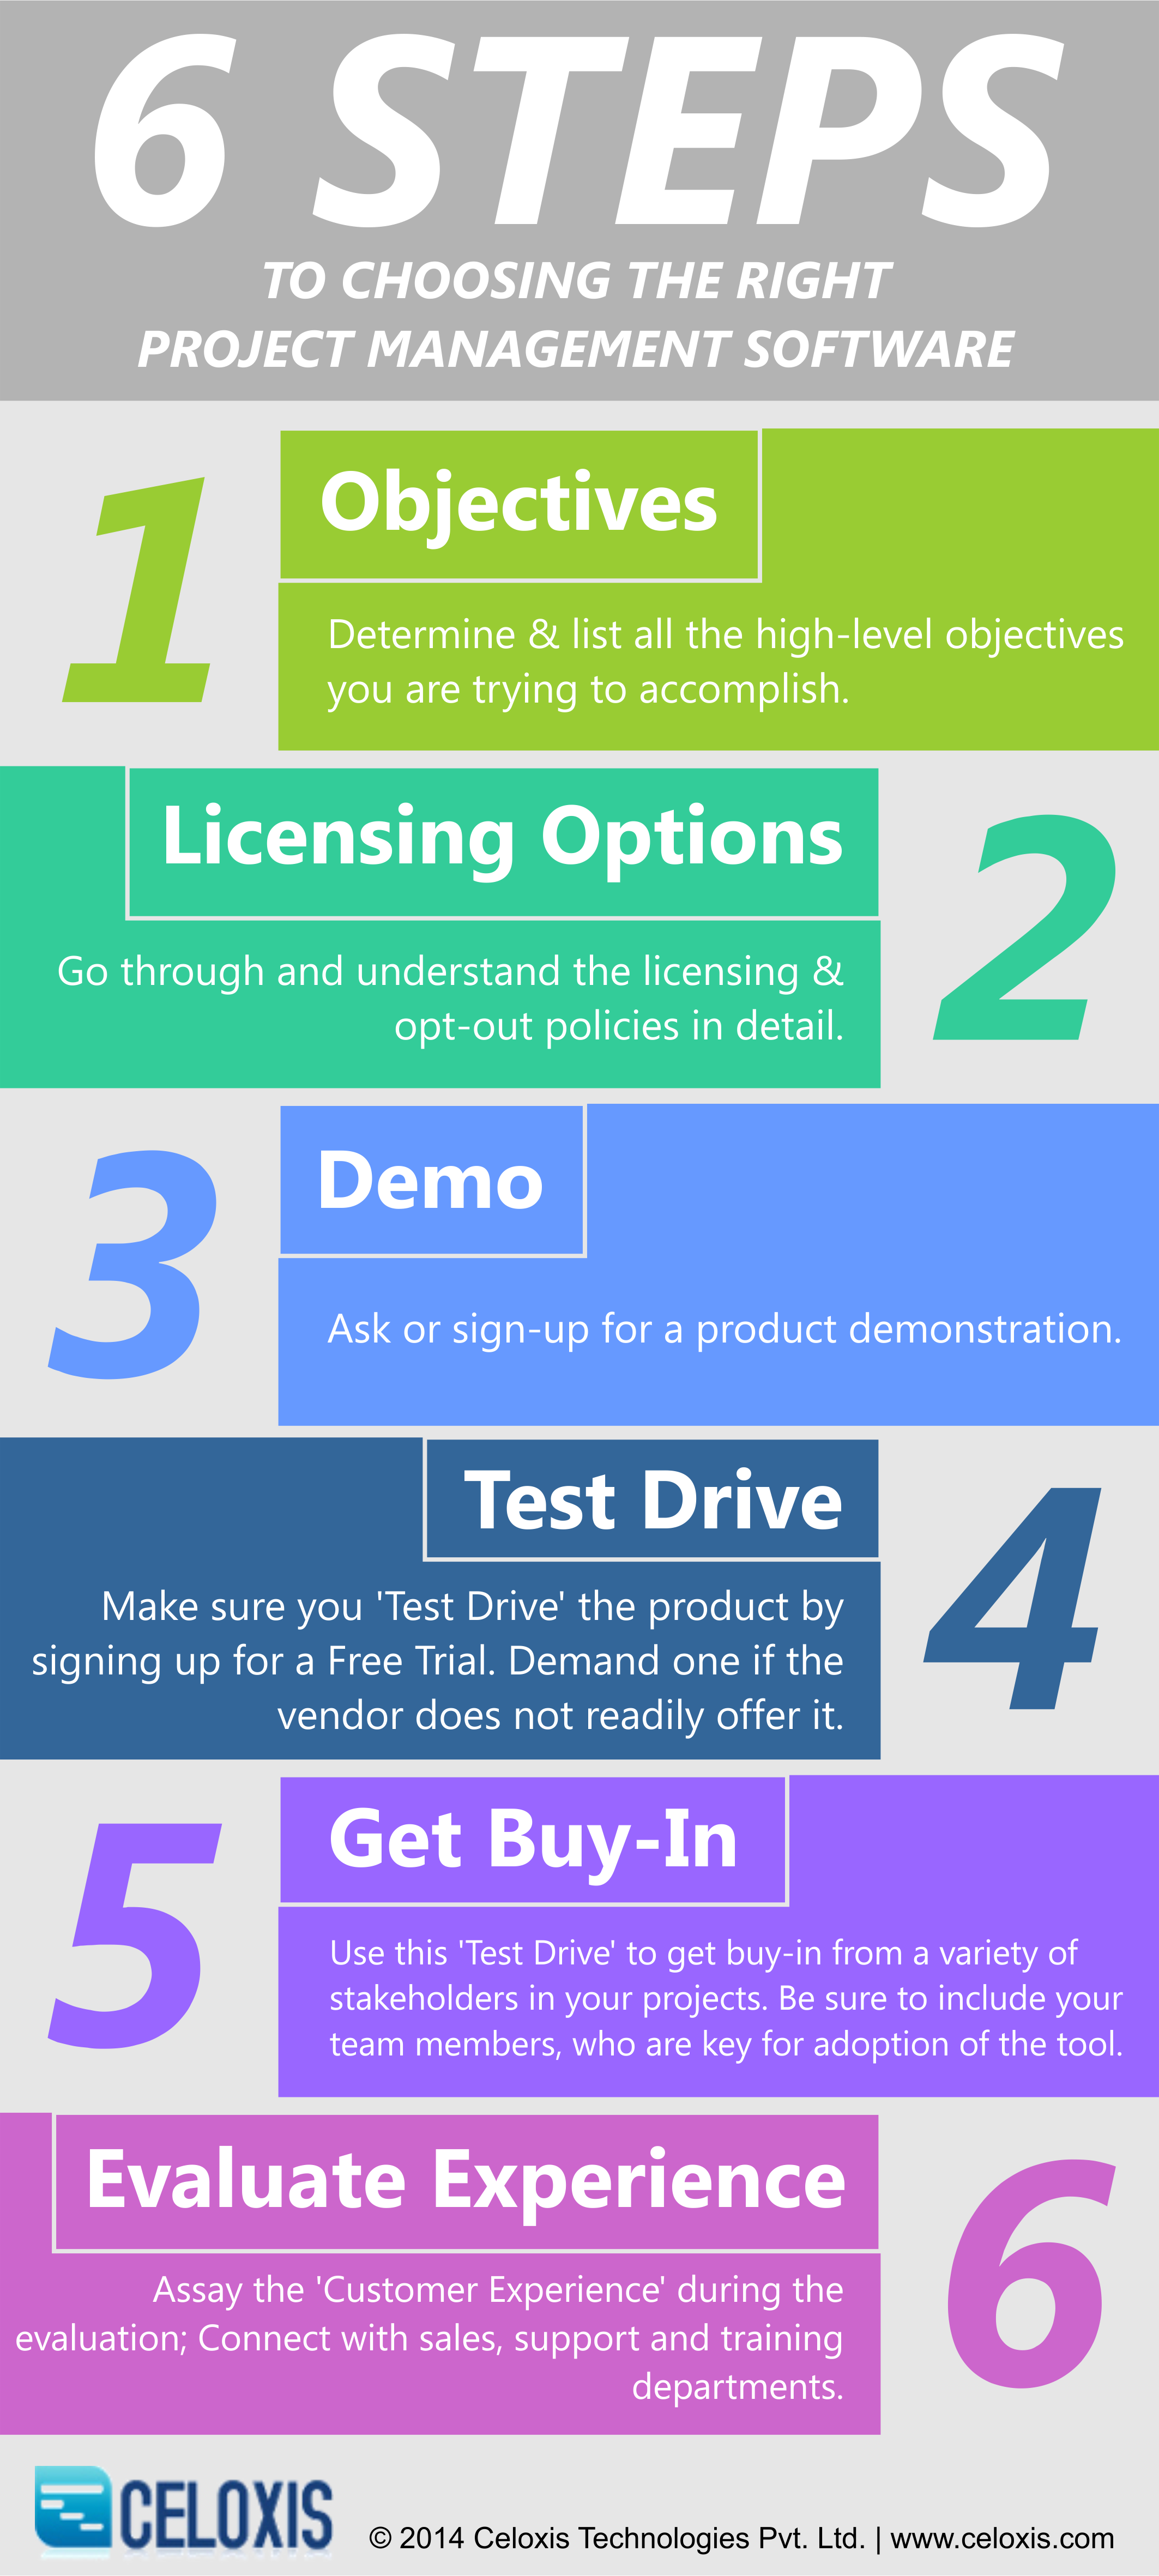 3 reasons to invest in project management software and how to choose the right one